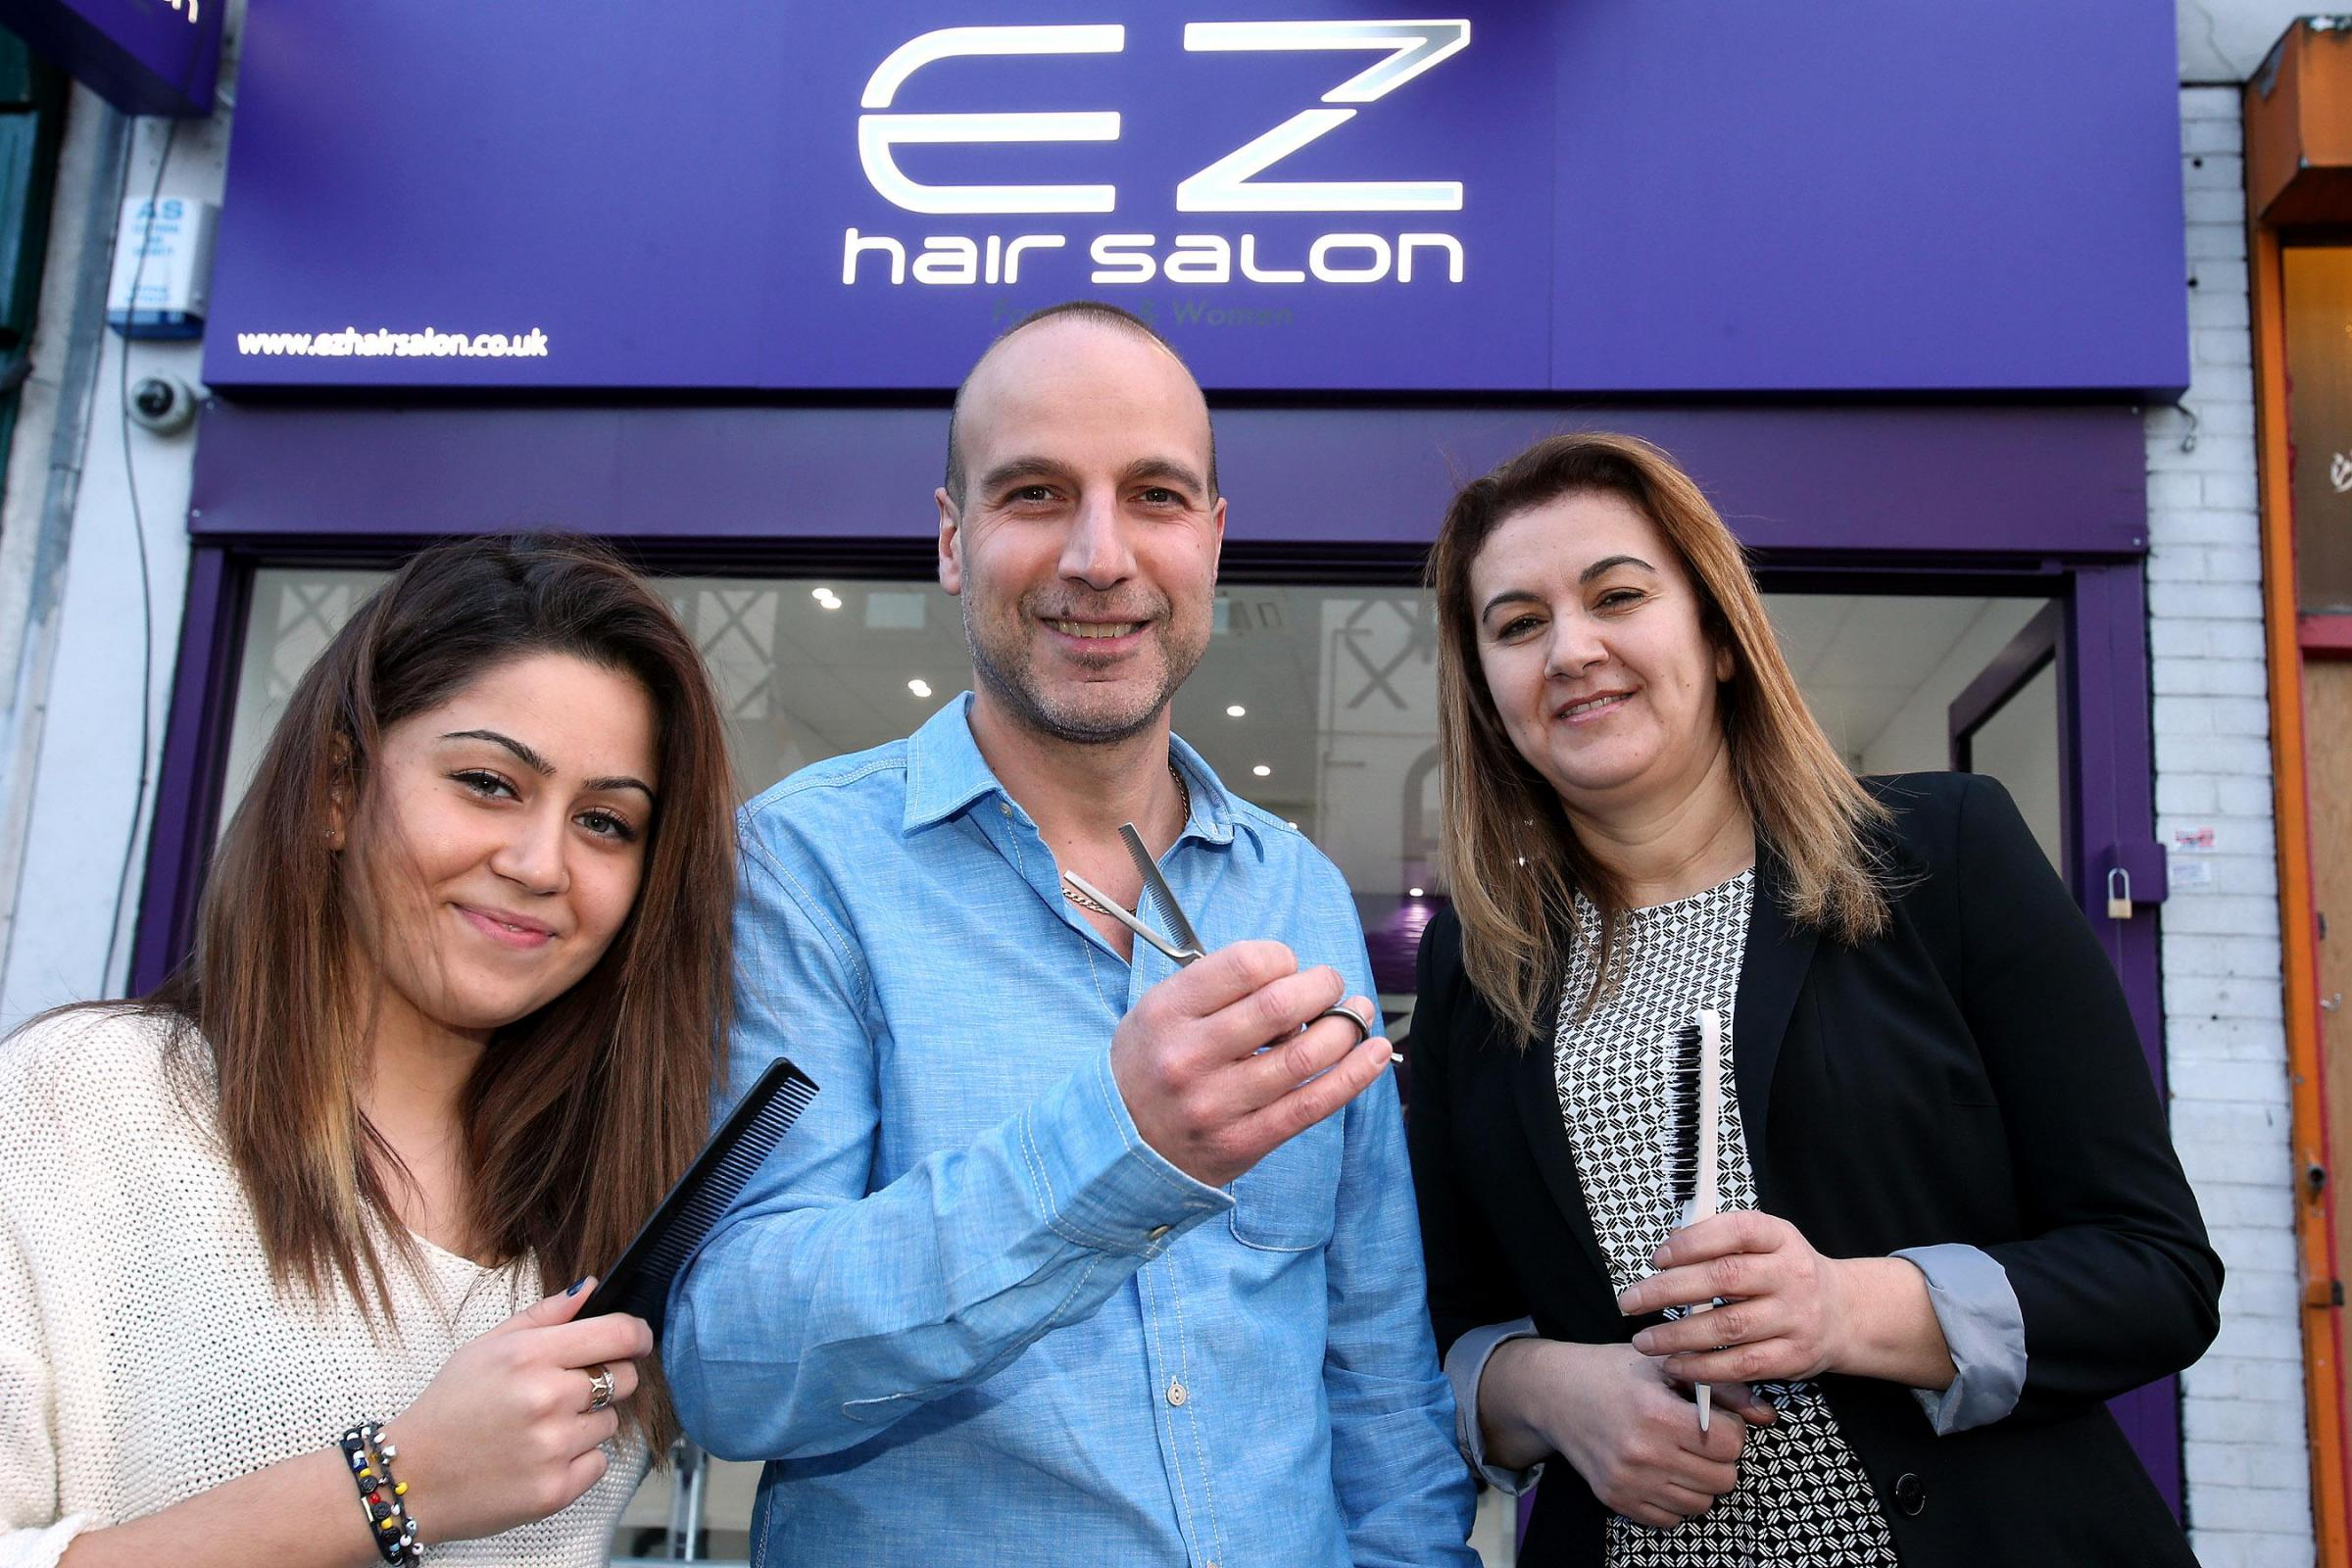 Fatma Ciftci with Erol and Zulfiye Huseyin at their new salon